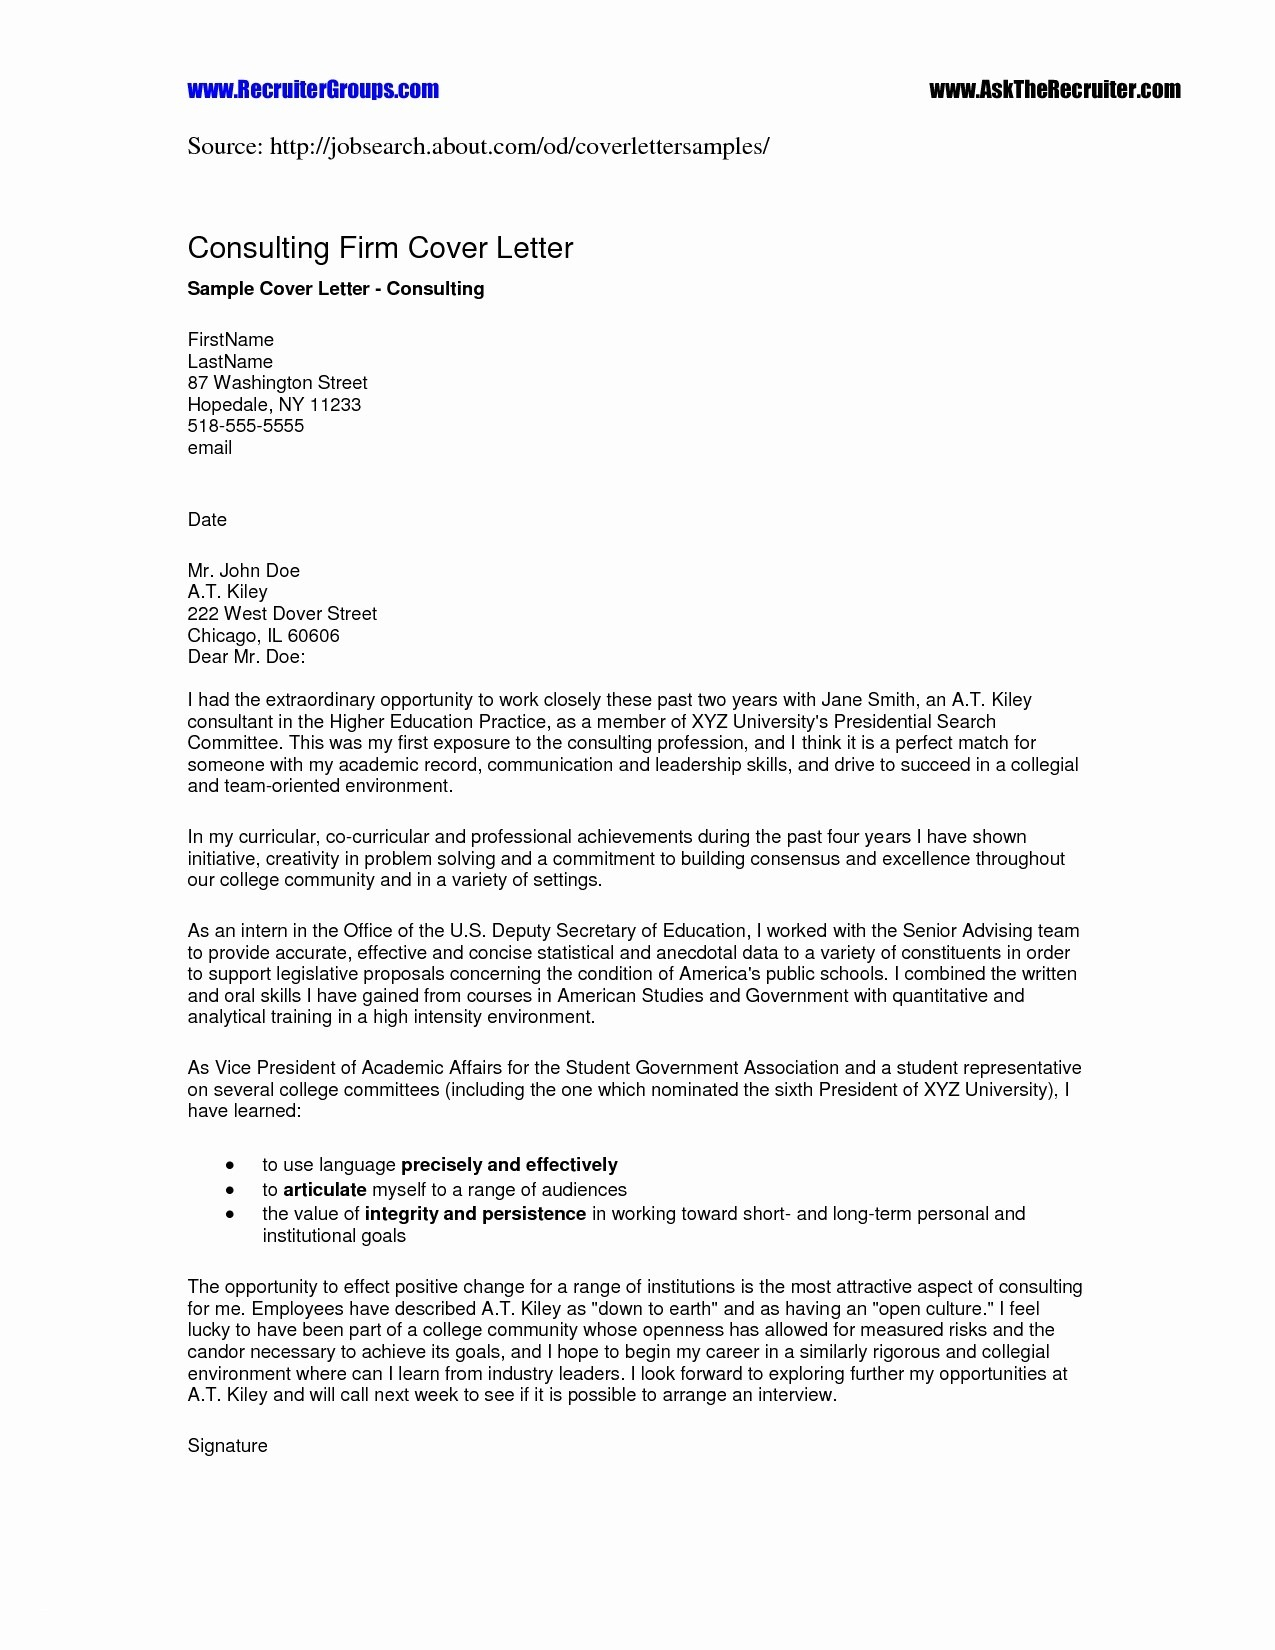 letter of good conduct template Collection-Free Reference Template for Resume Inspirational Sample Cover Letter for Good Conduct Certificate Fresh Reference 8-g